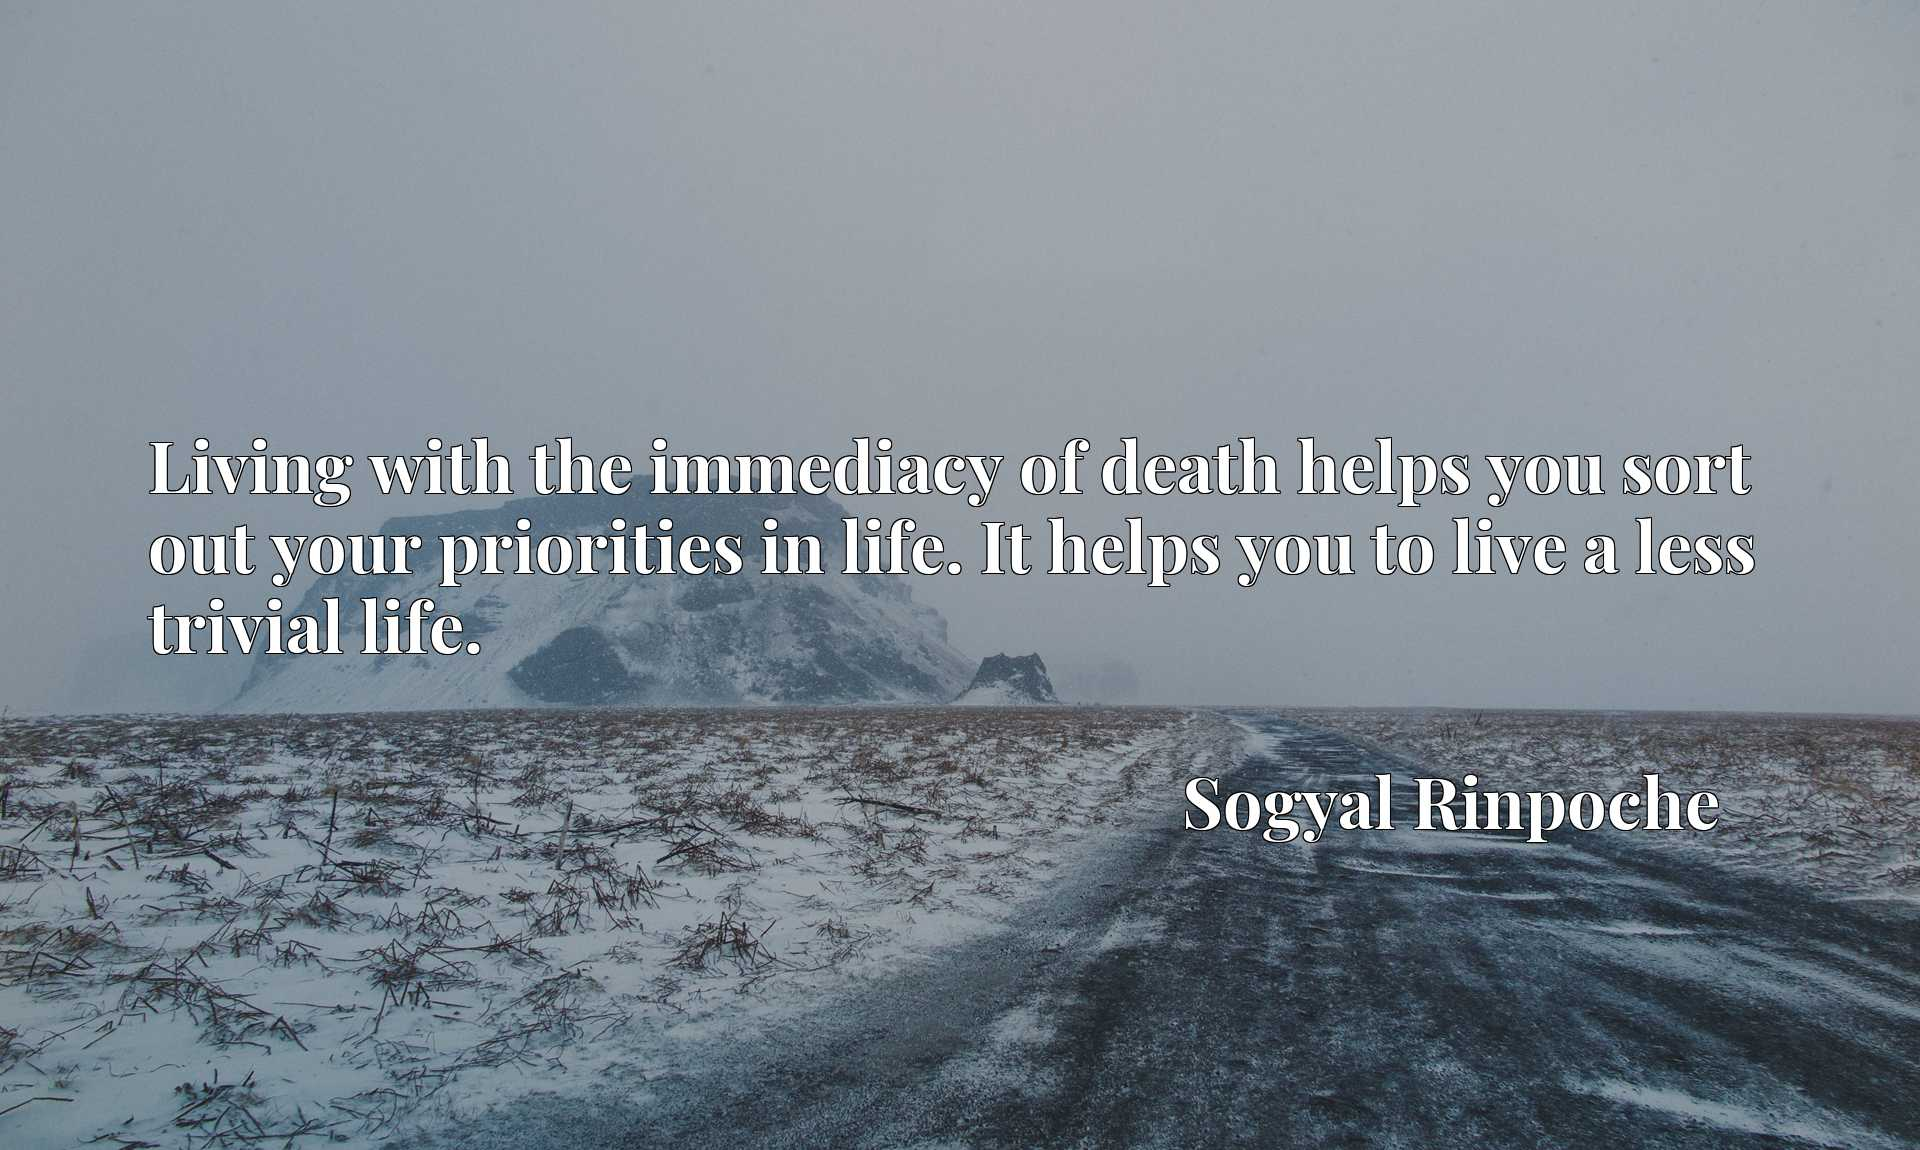 Living with the immediacy of death helps you sort out your priorities in life. It helps you to live a less trivial life.